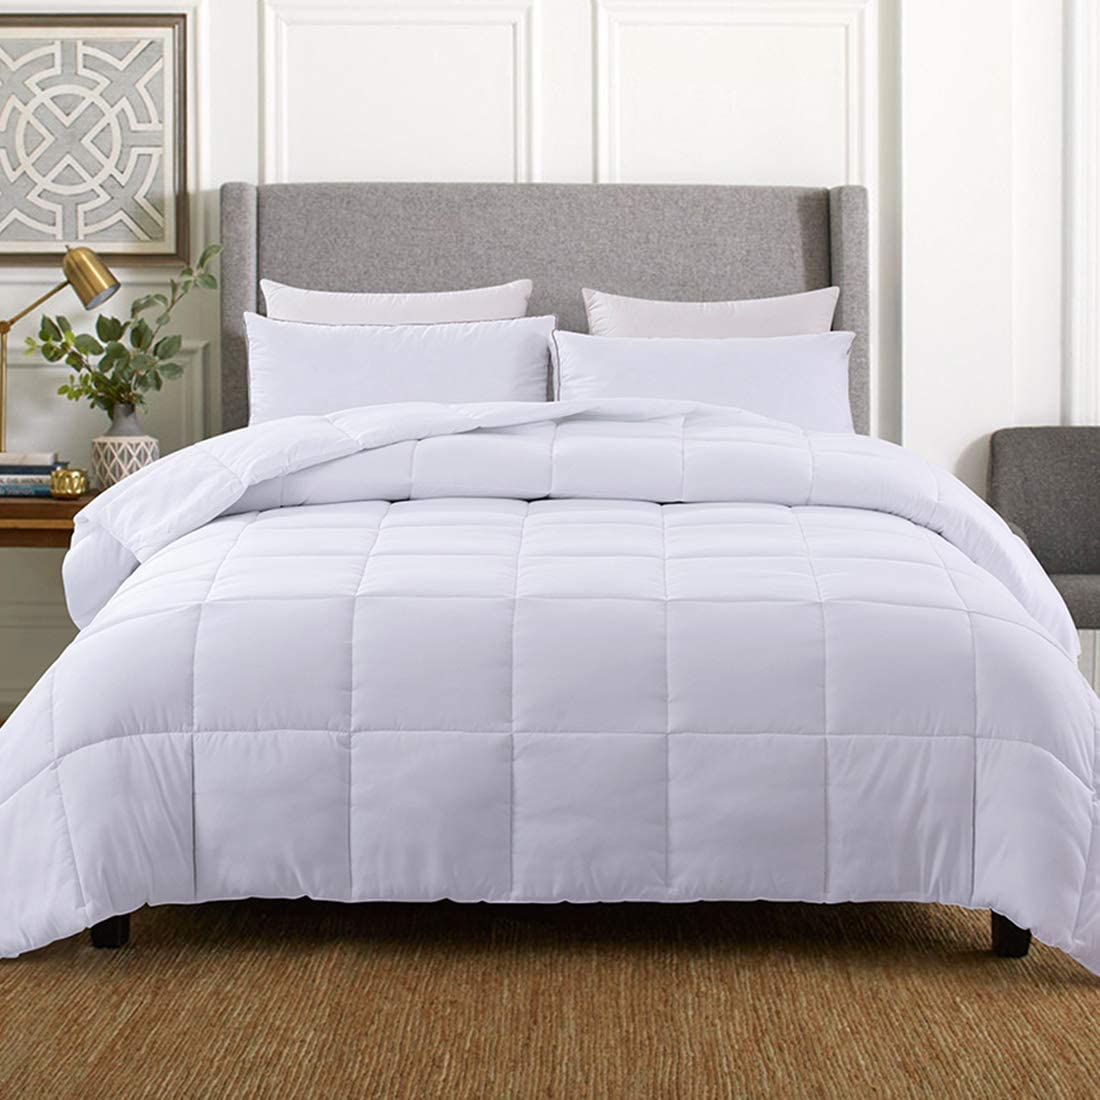 WhatsBedding White Down Alternative Comforter Double Sided/Lightweight/Box Stitched - All Season Duvet Insert-Stand Alone Comforter - Twin Size(64×88 Inch)